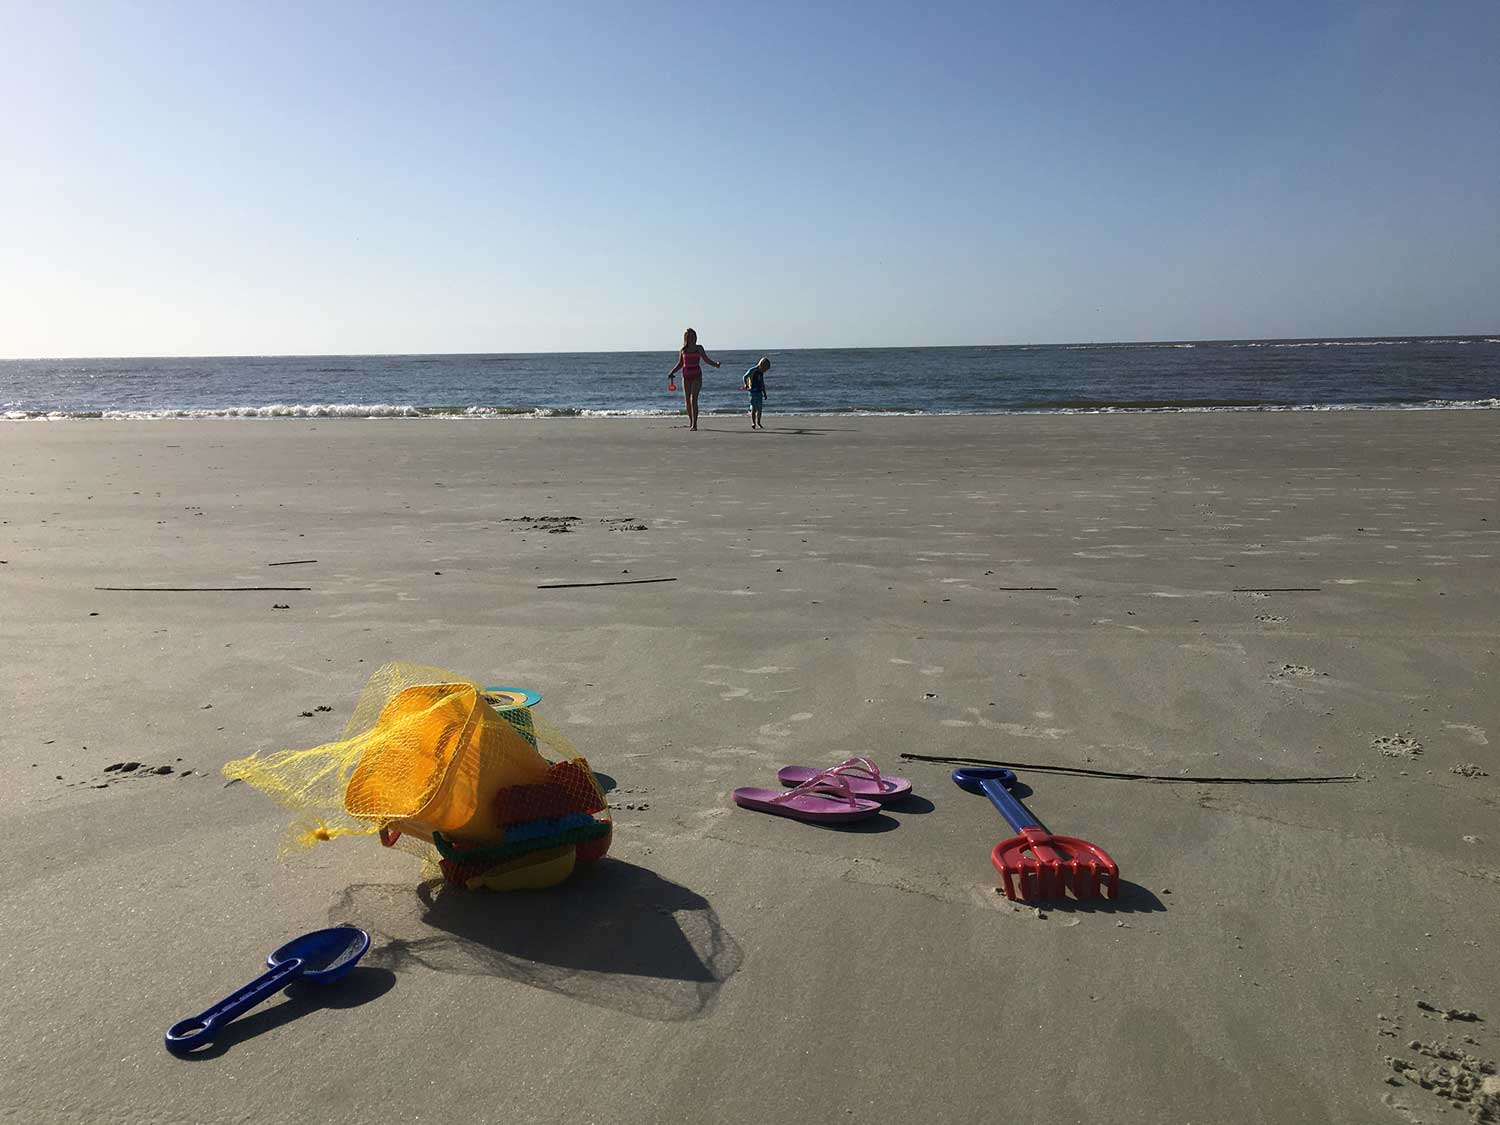 The St Simons Island beach offers families so much fun and relaxation!